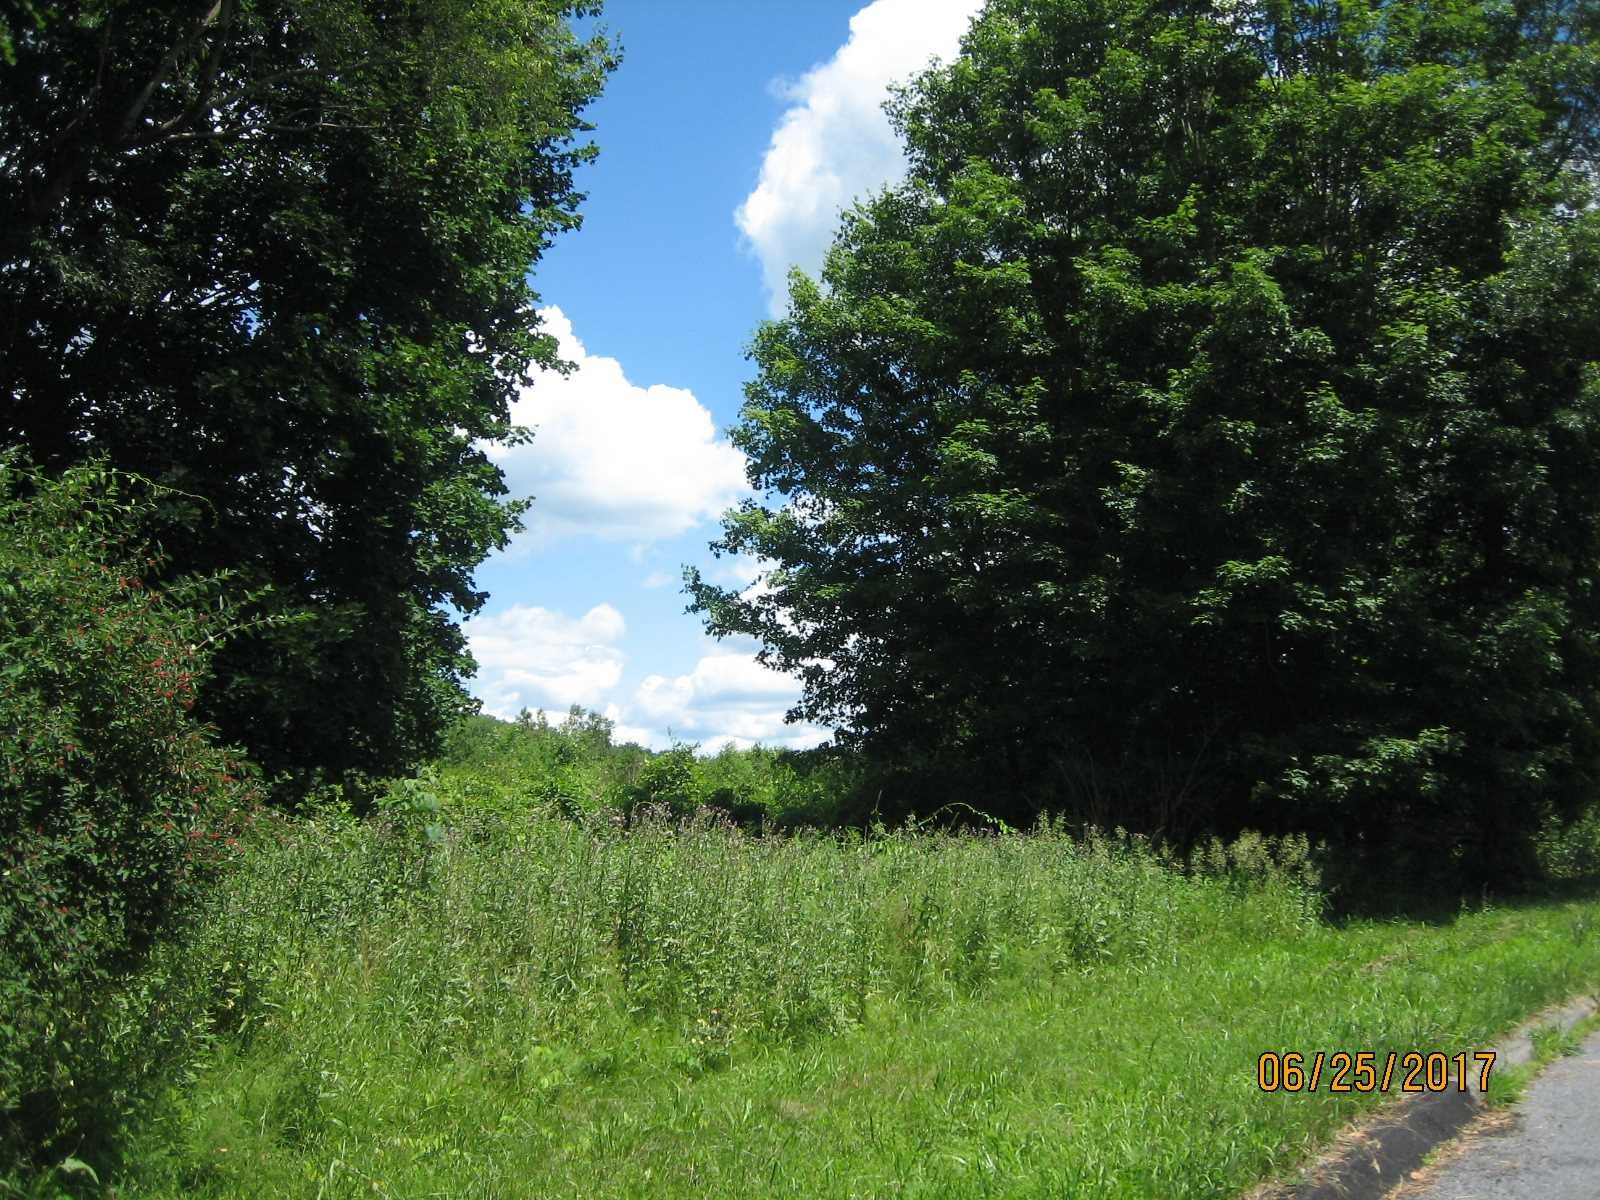 Land for Sale at 57 MILLTOWN ROAD 57 MILLTOWN ROAD Southeast, New York 10509 United States